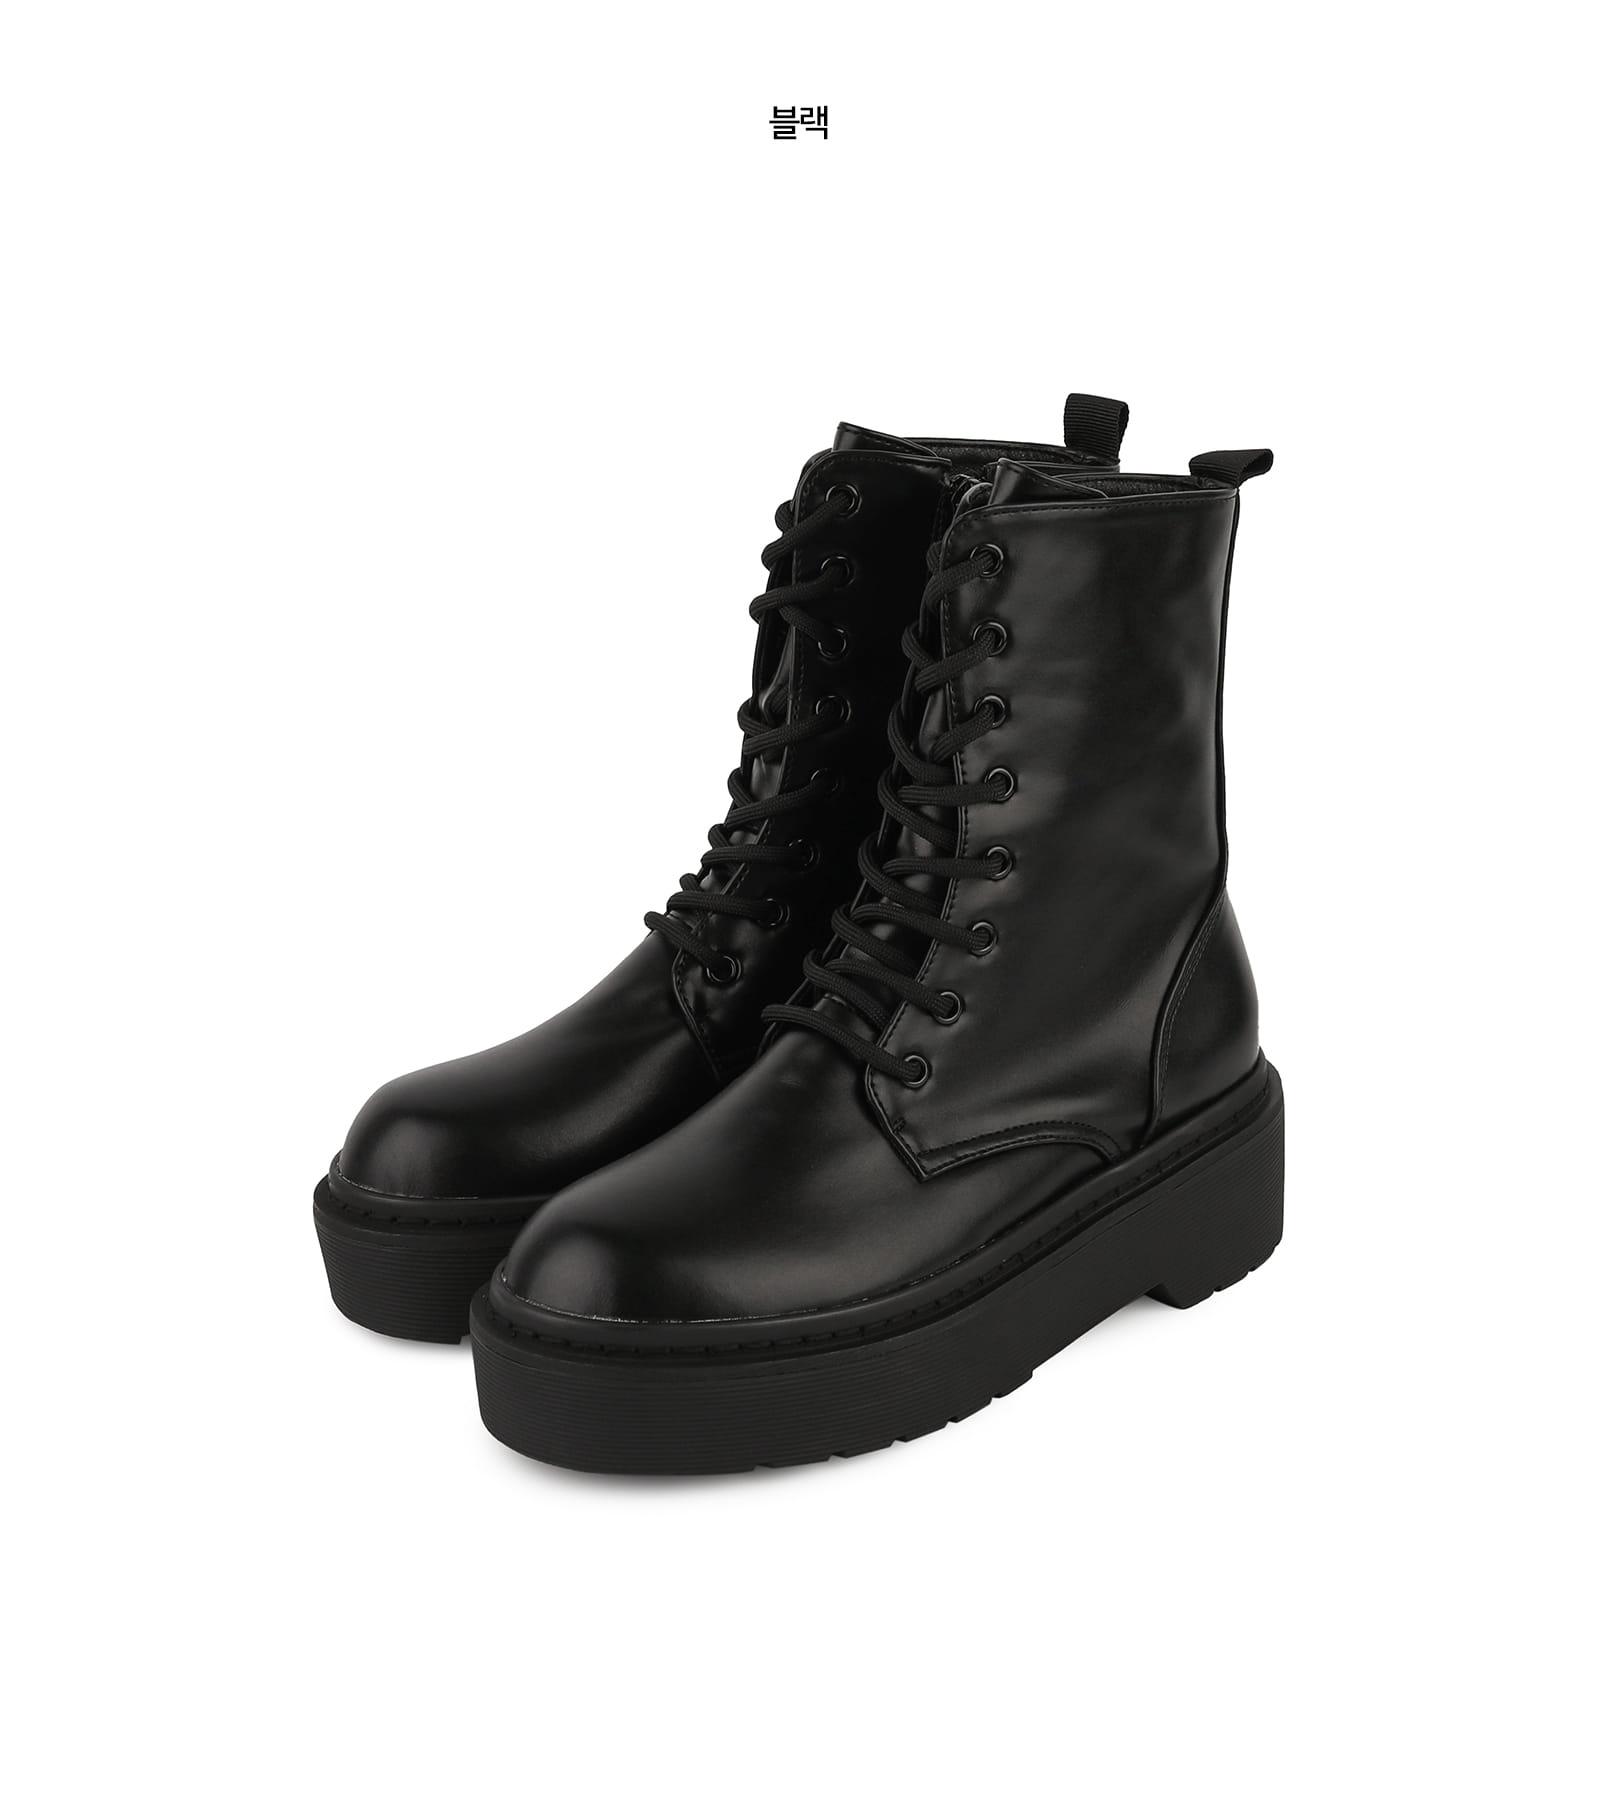 Dark lace-up walker boots